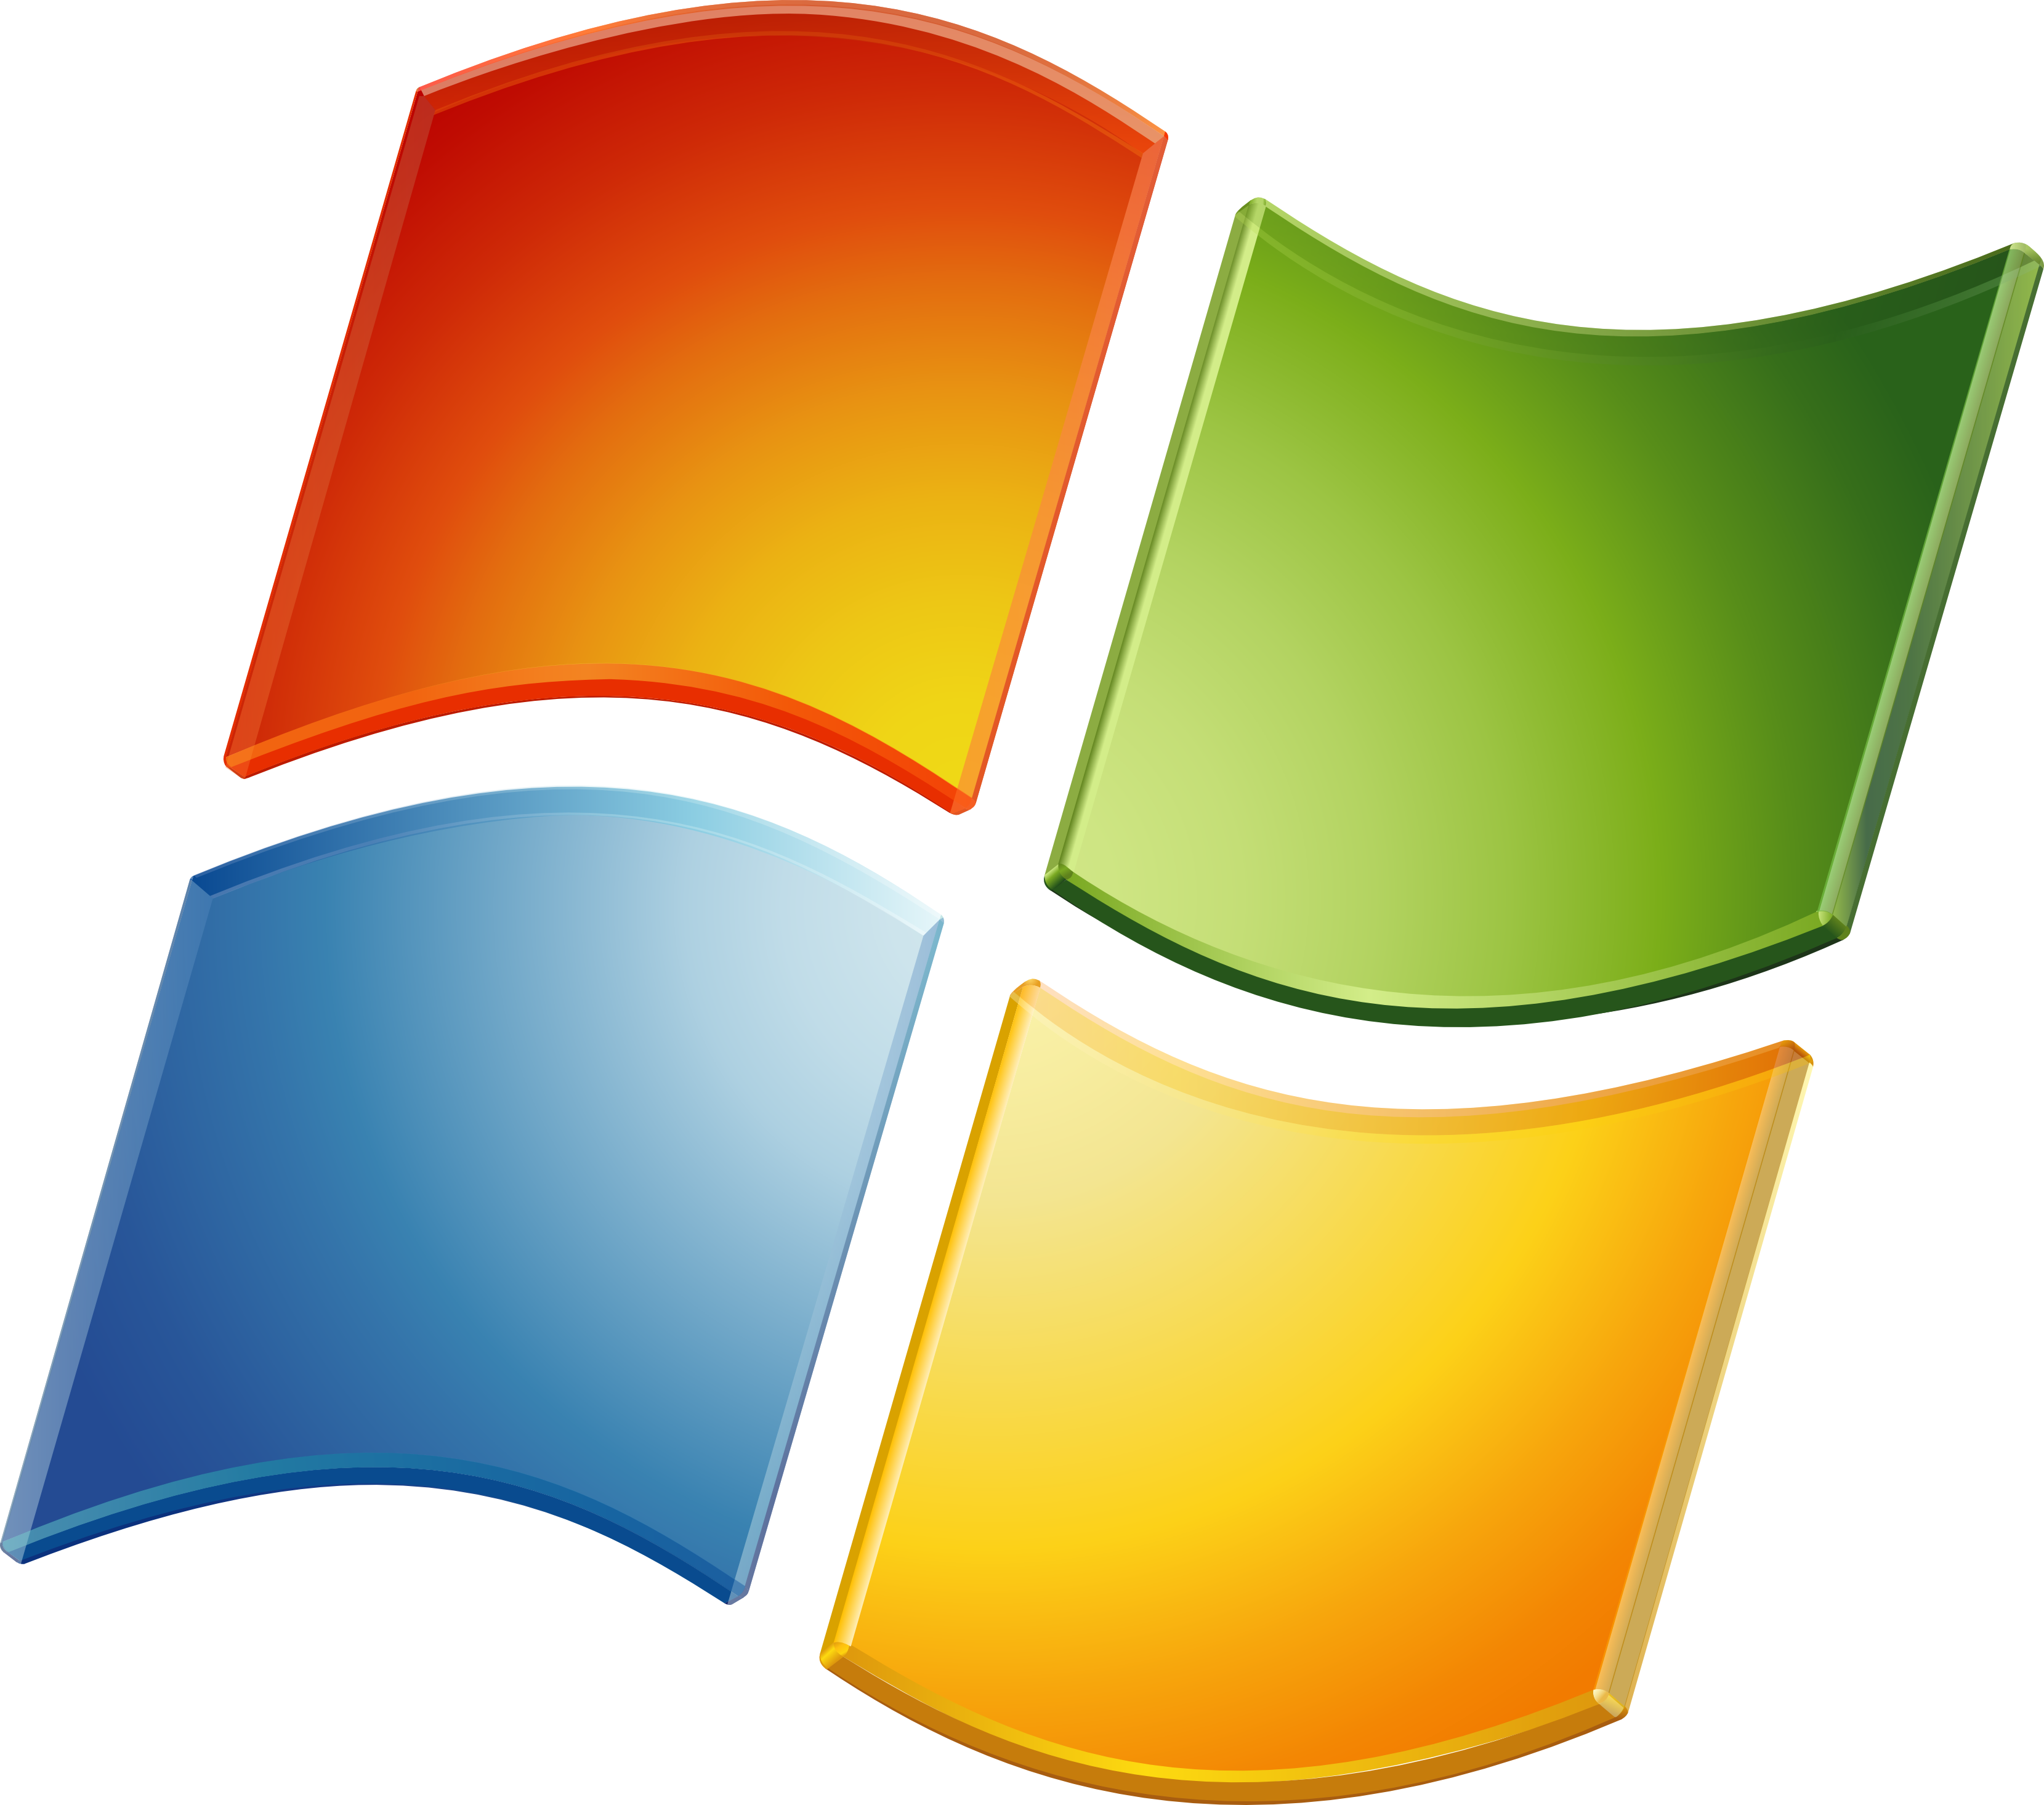 microsoft windows  logo png images #2421